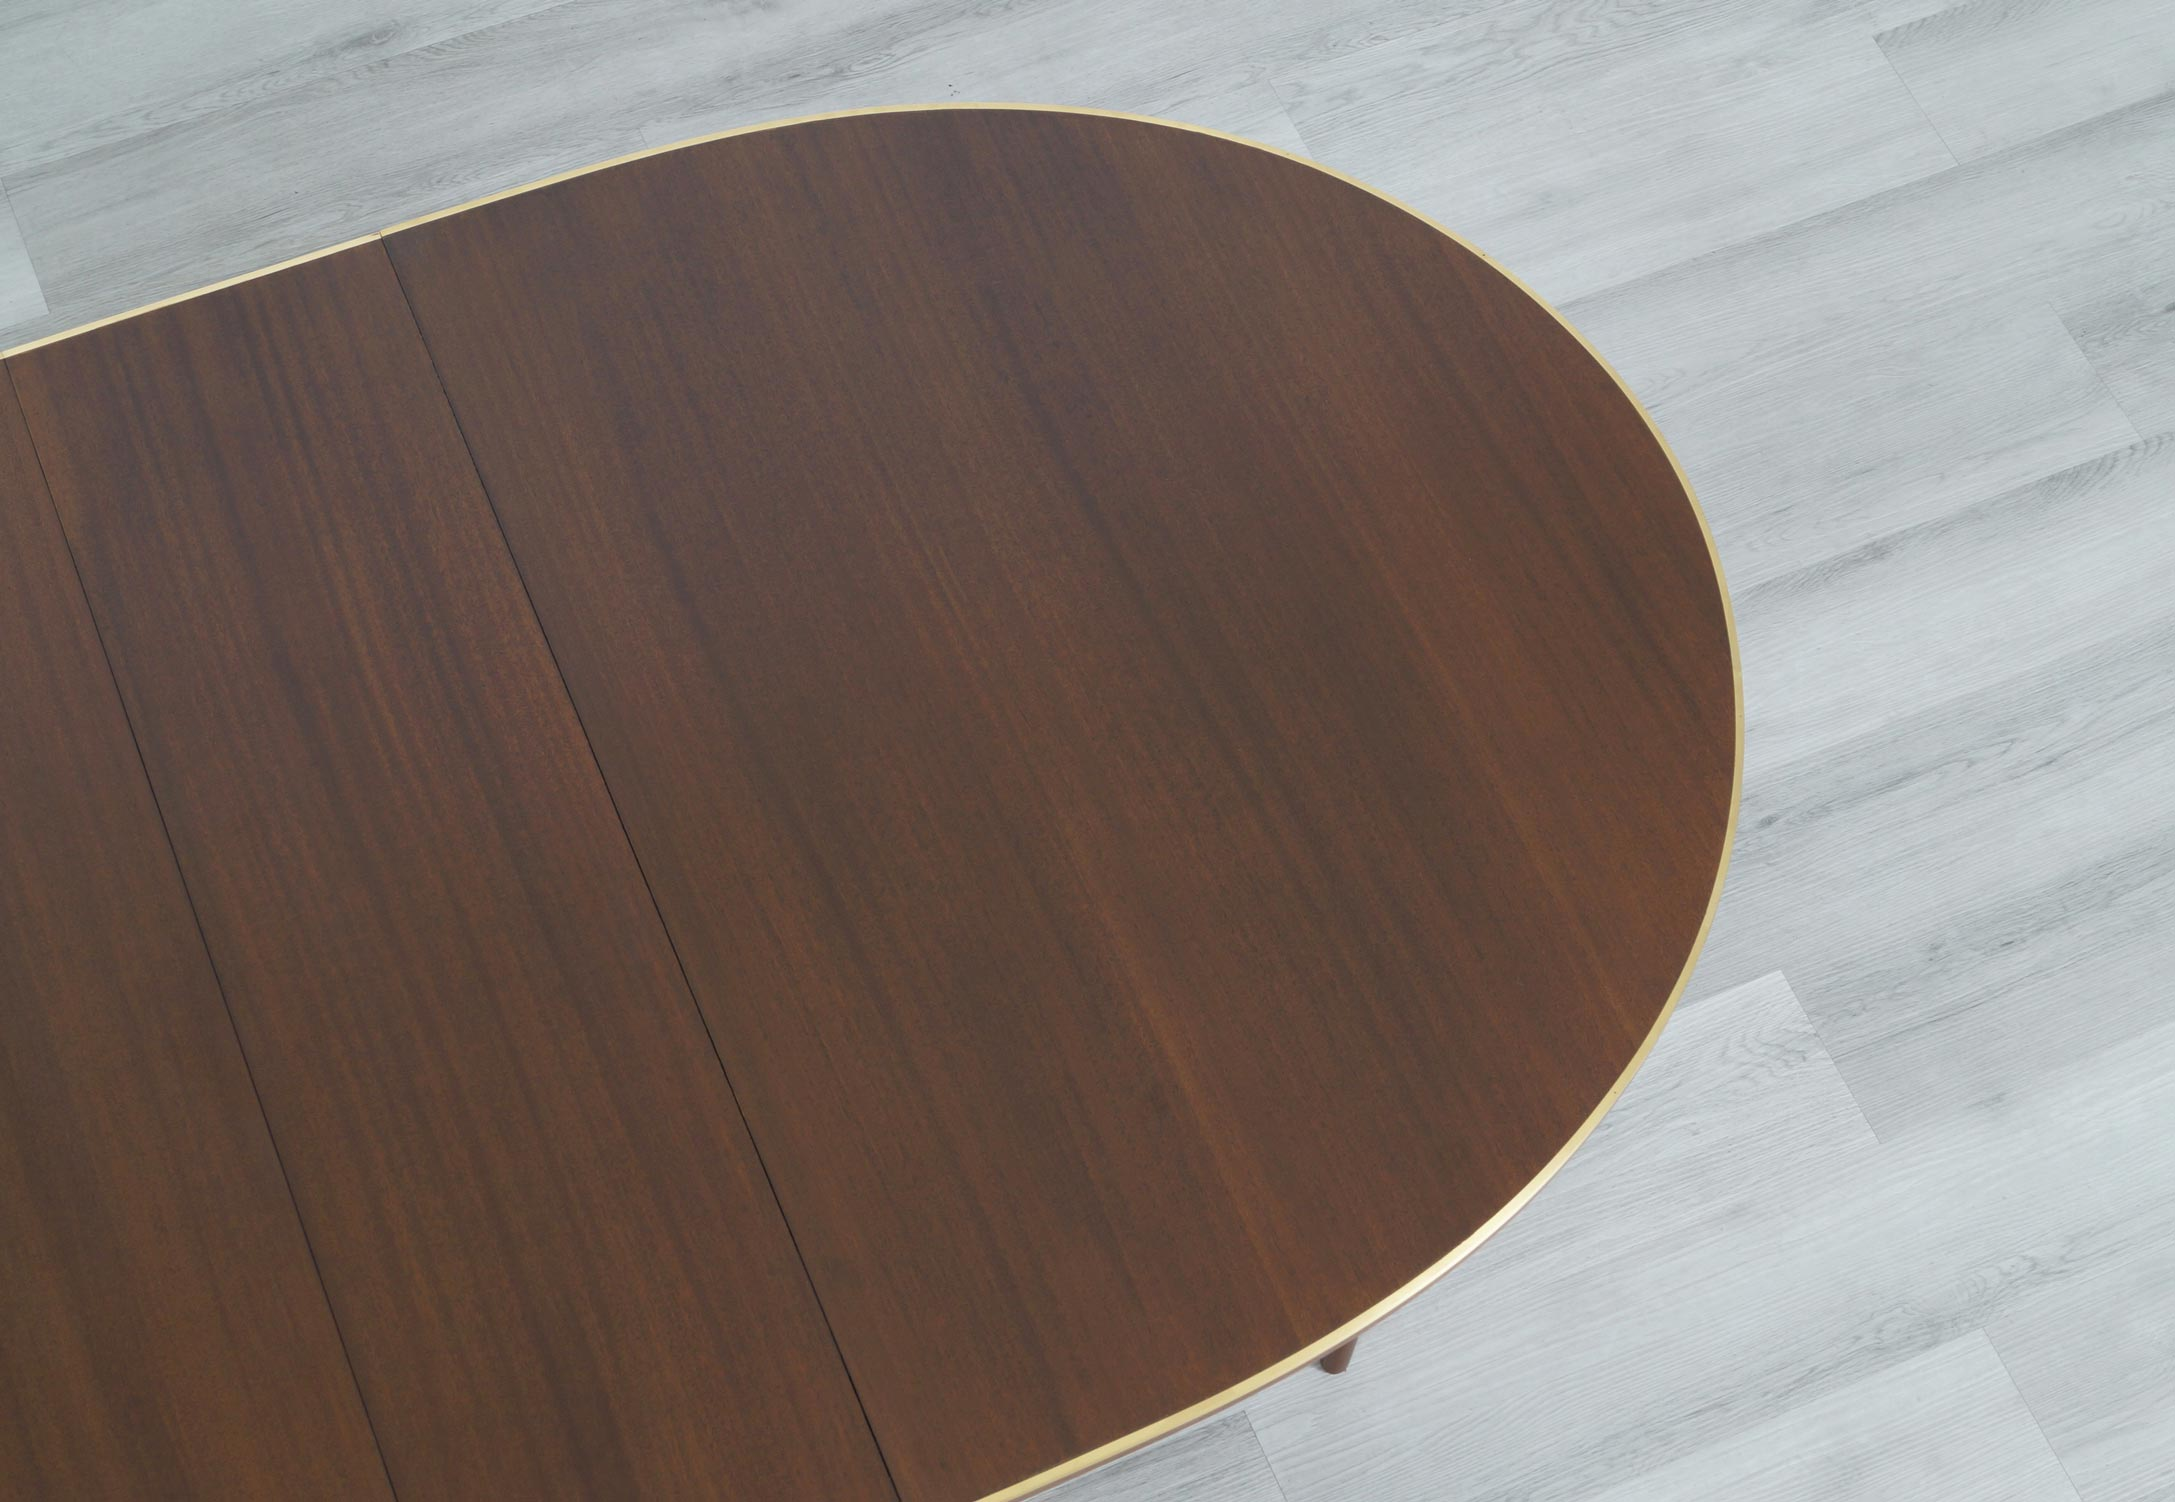 Vintage Expanding Connoisseur Collection Dining Table by Paul McCobb